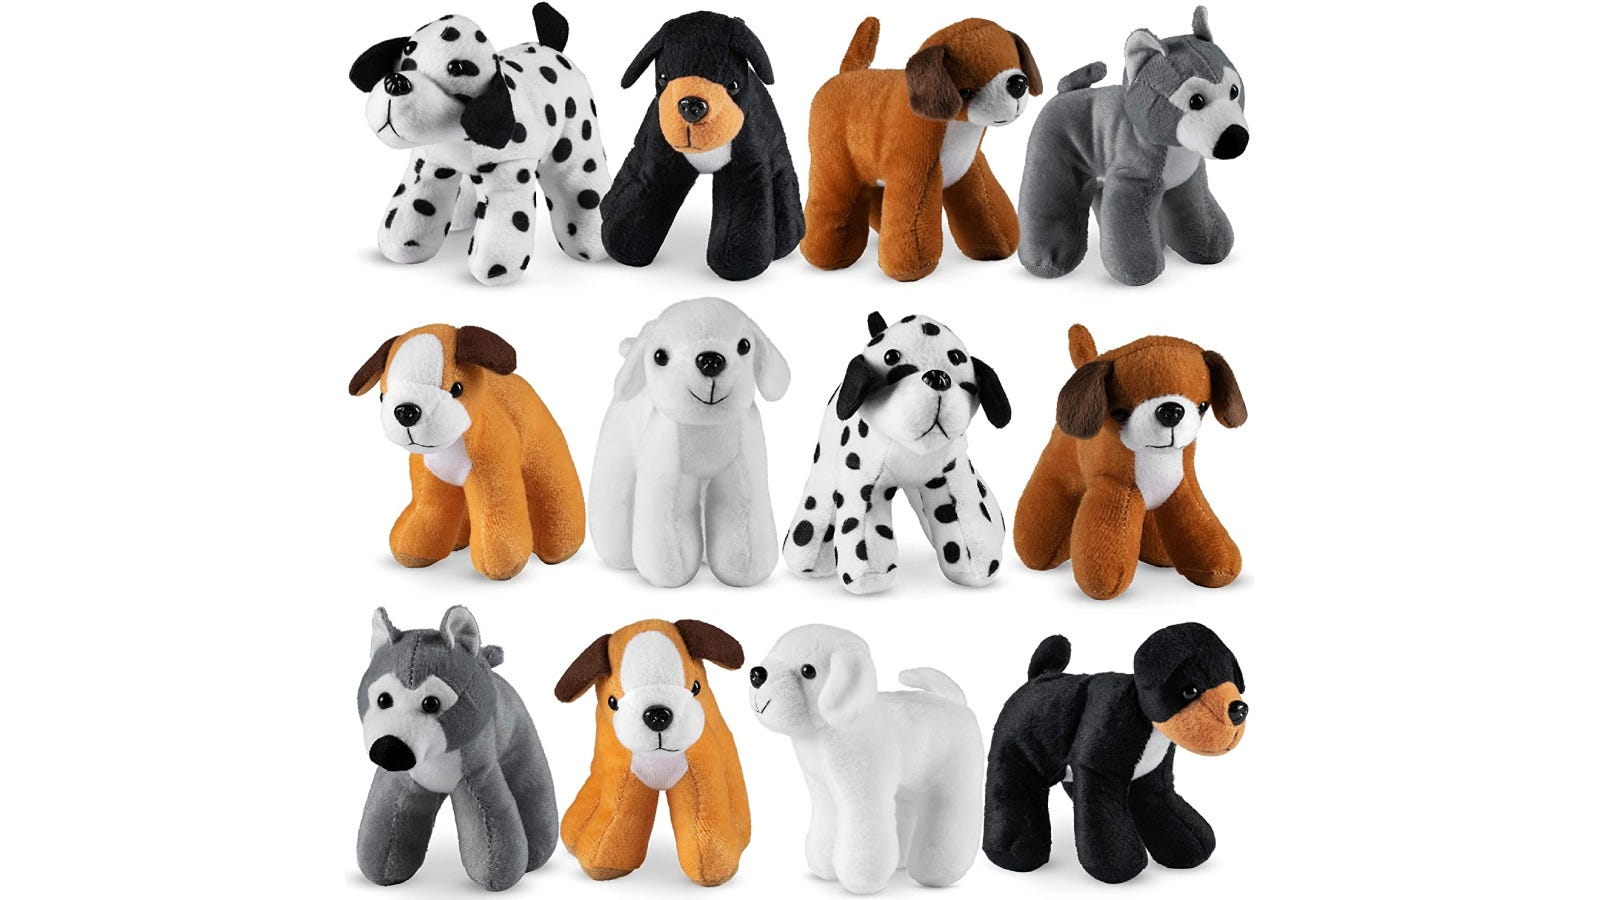 Twelve dog stuffed animals with different colored fur and patterns.